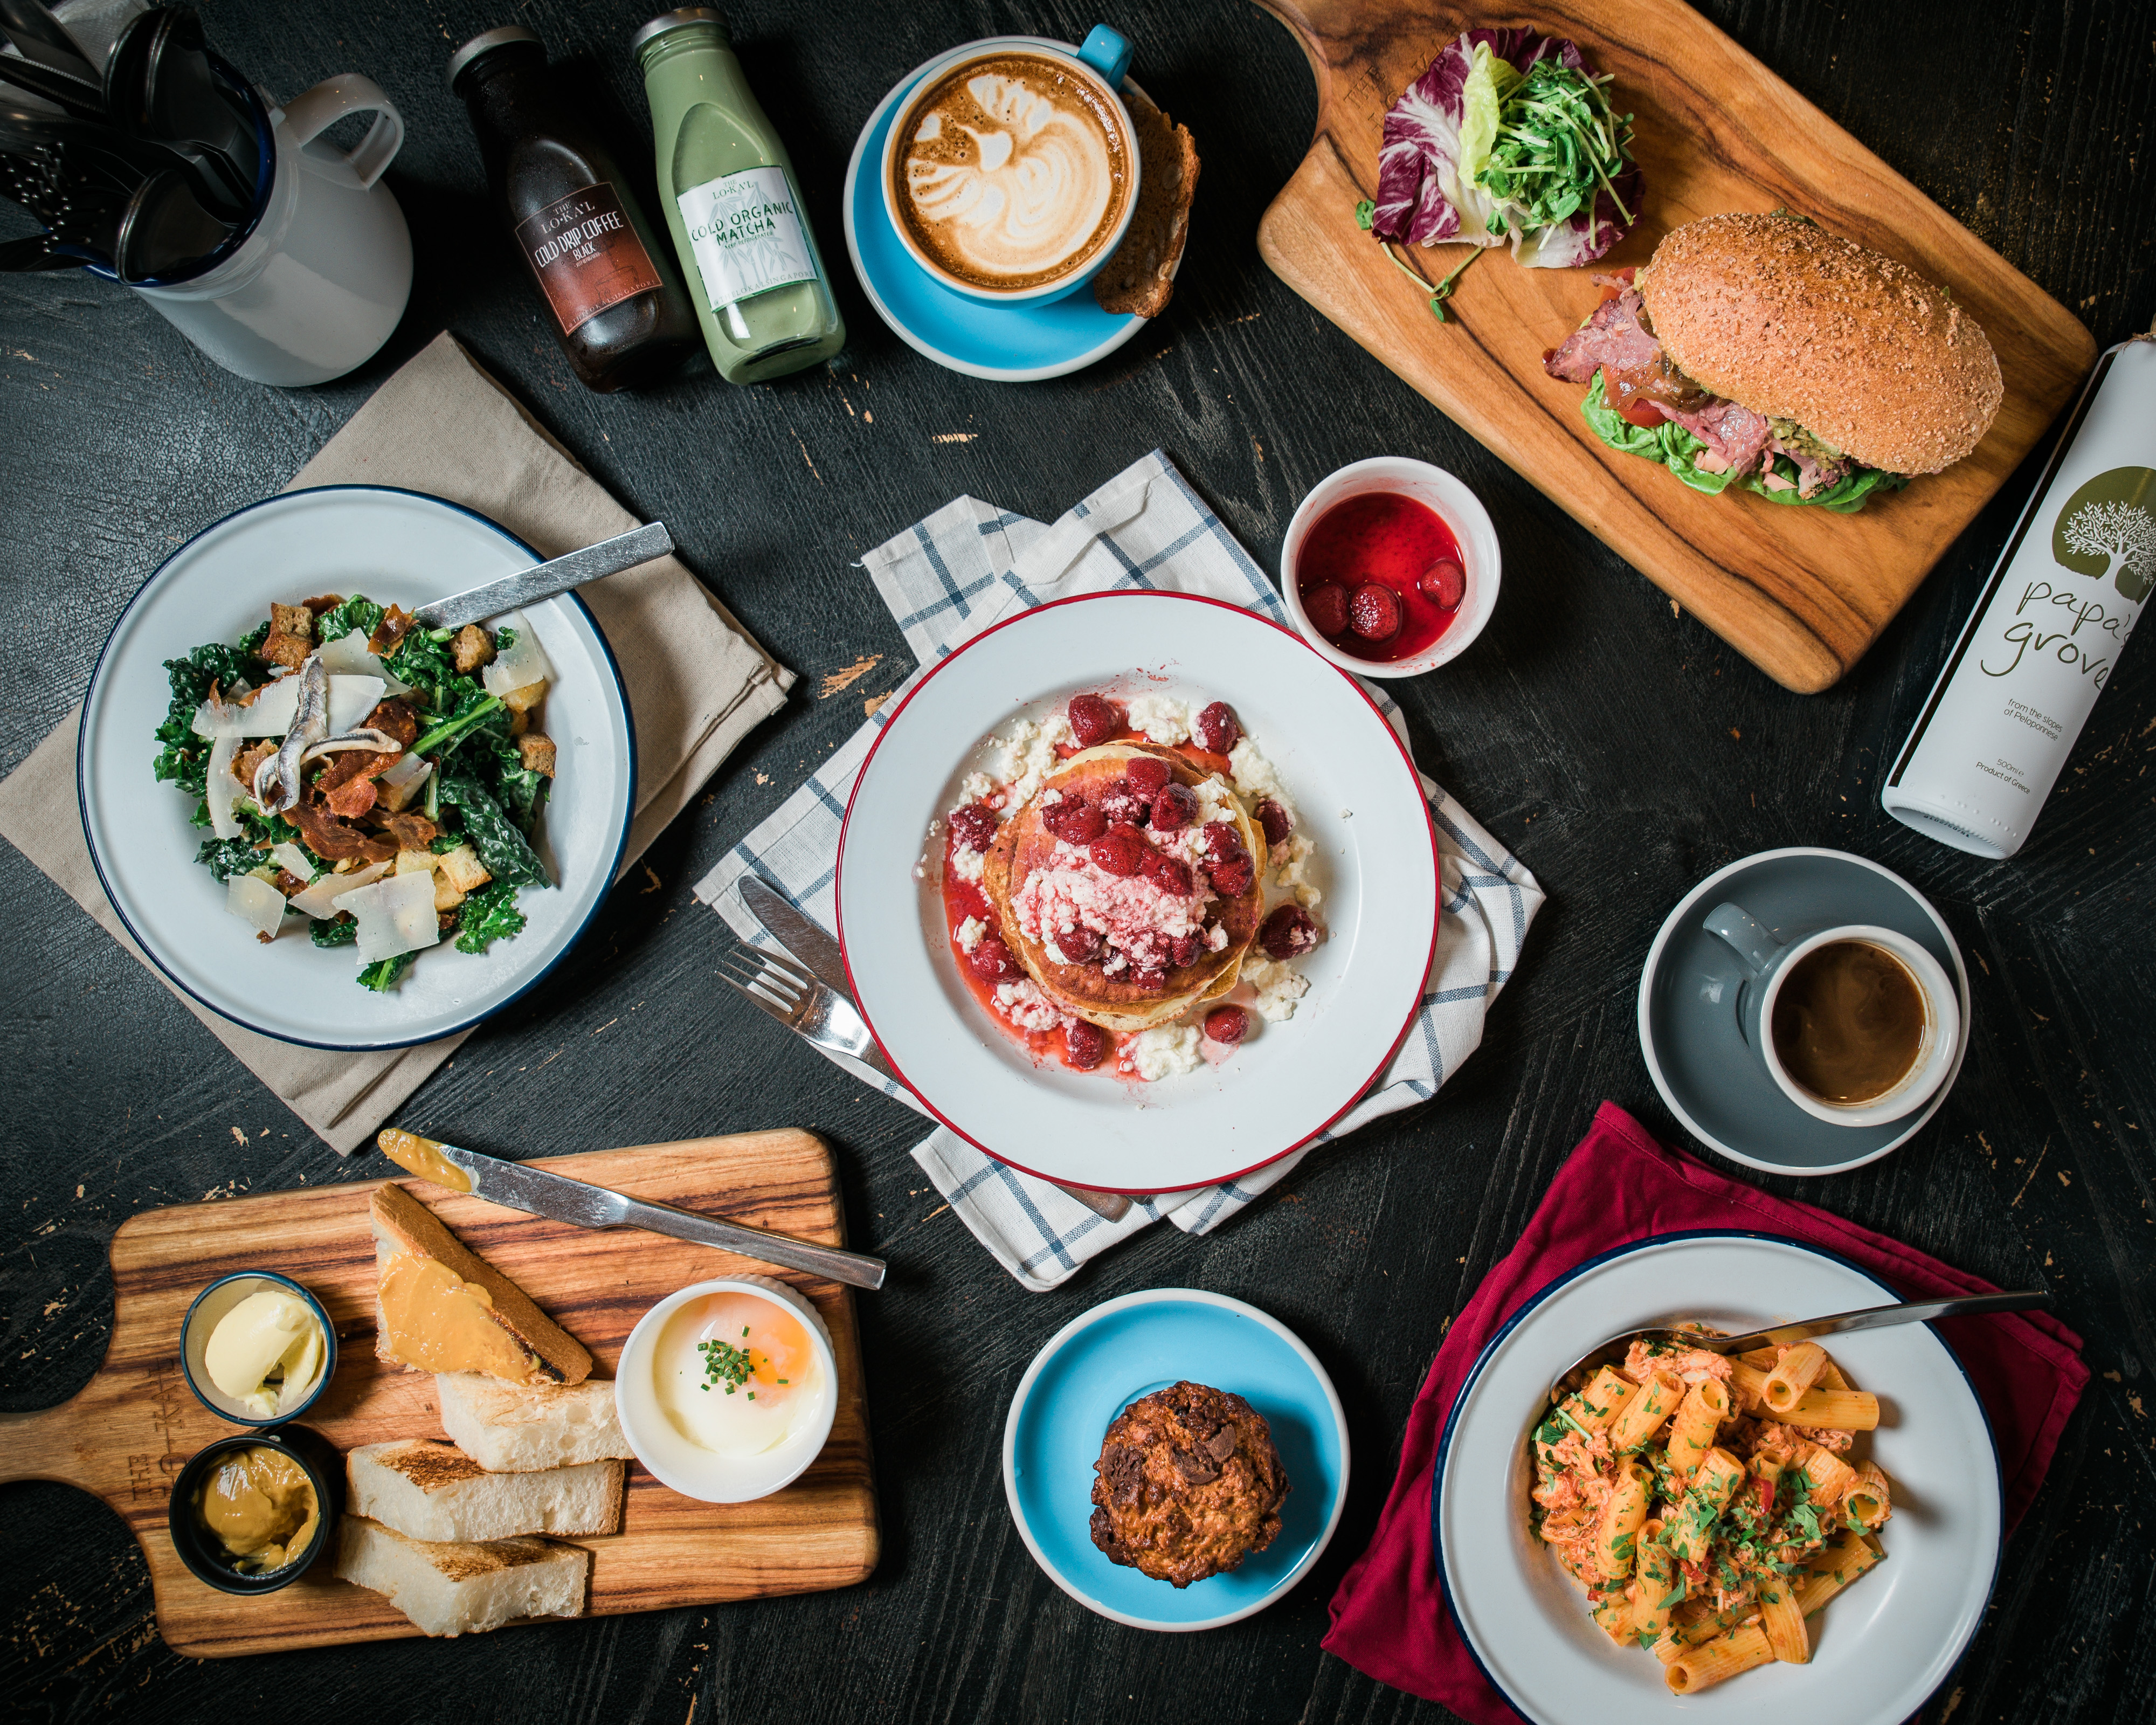 uberEATS To Deliver Breakfast, Joins Deliveroo And foodpanda